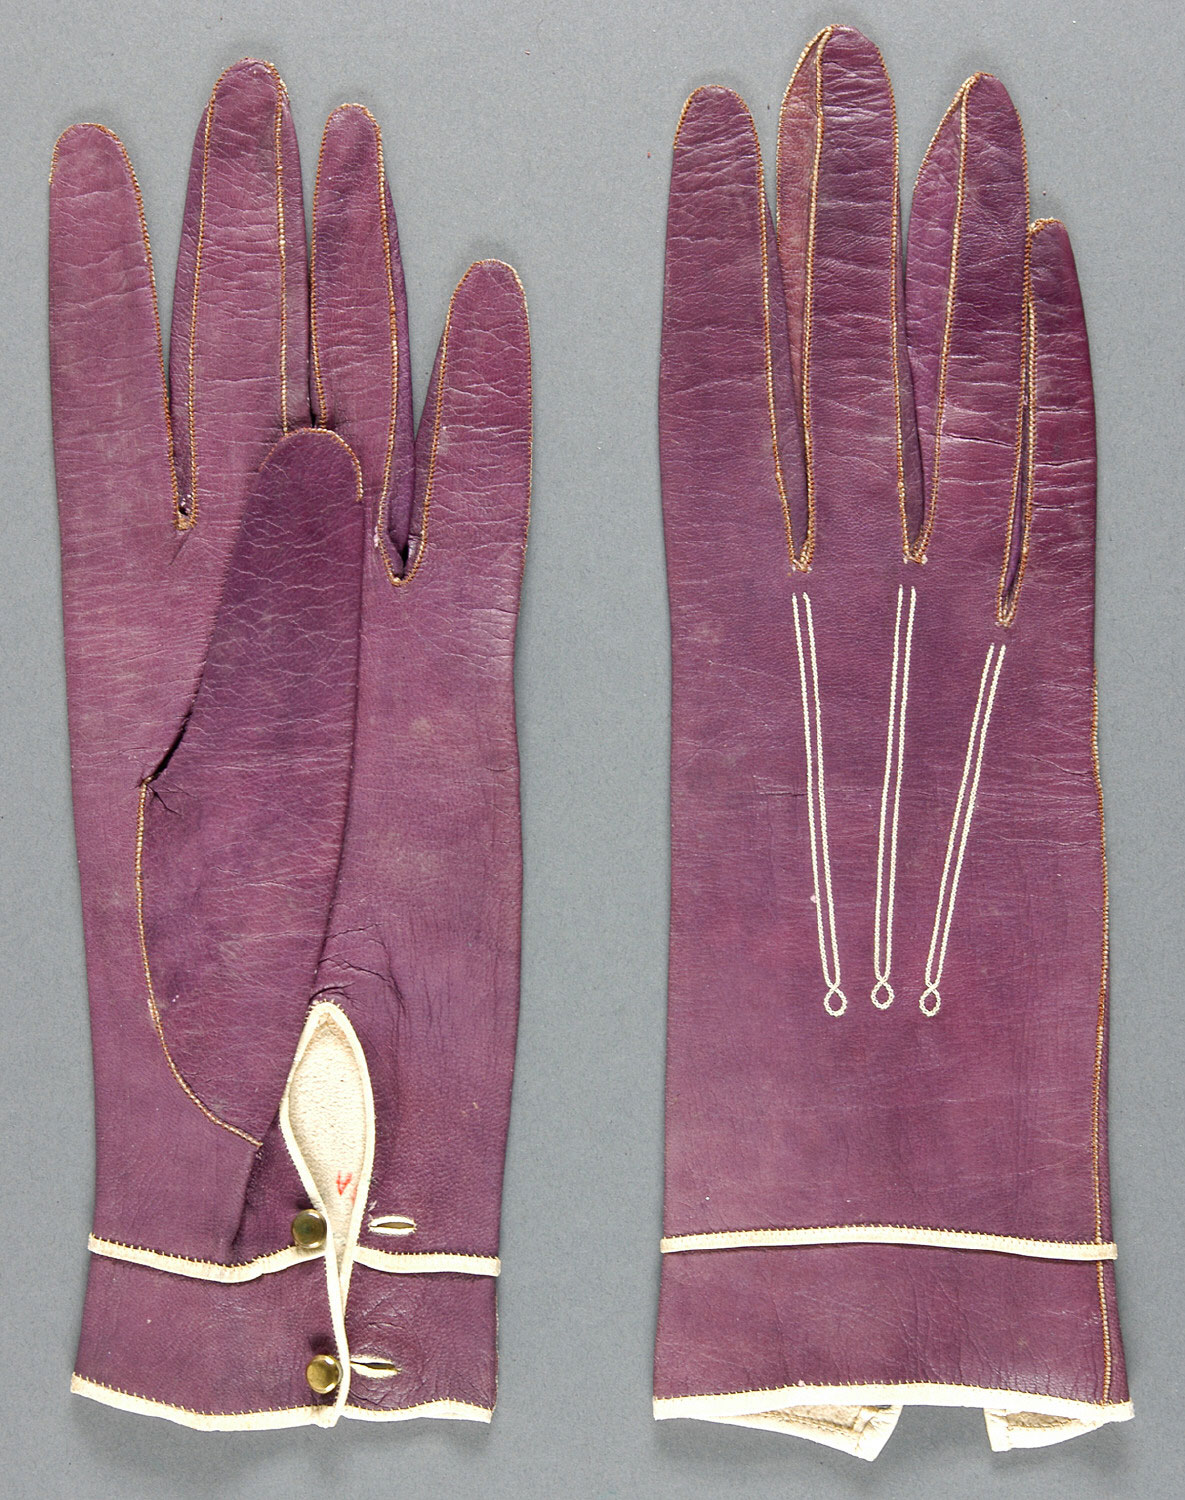 Woman's Gloves